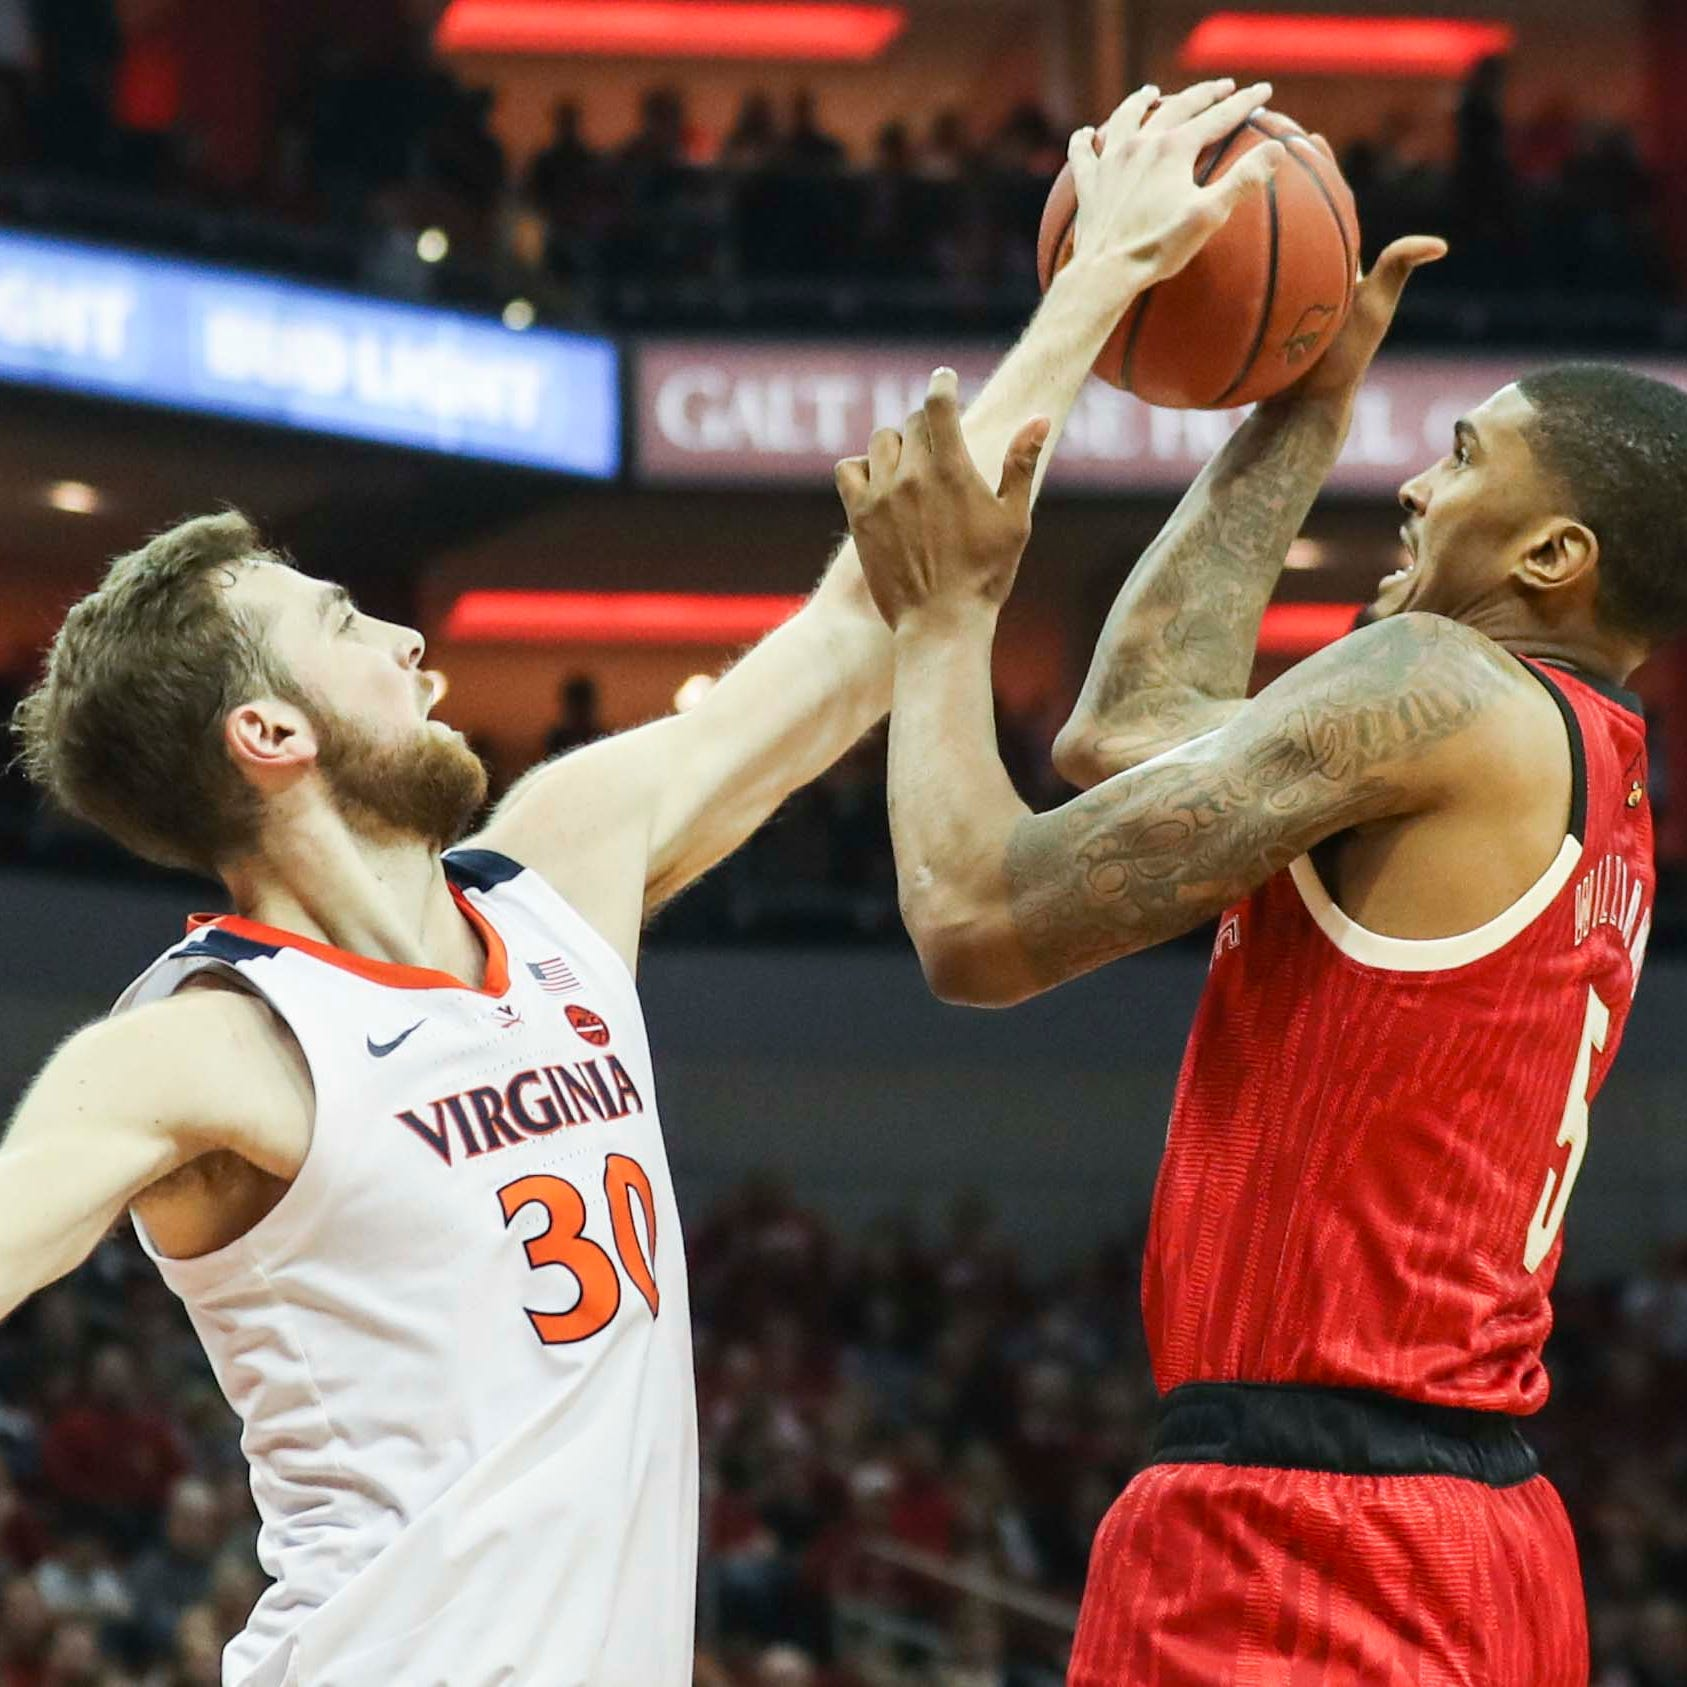 Louisville's tough stretch continues after blowing lead to Virginia